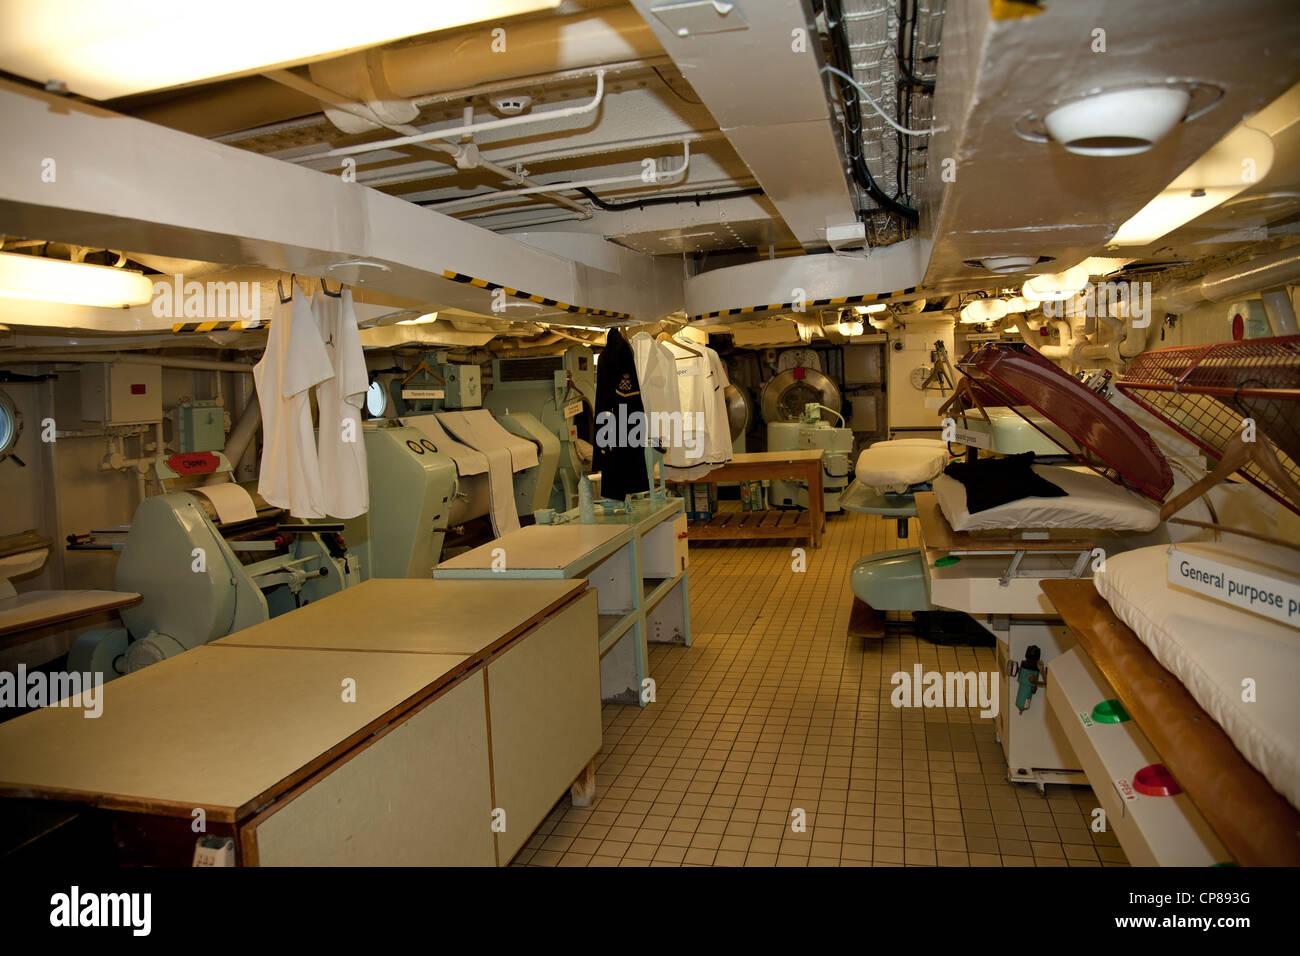 Laundry Room Inside The Royal Yacht Britannia Edinburgh